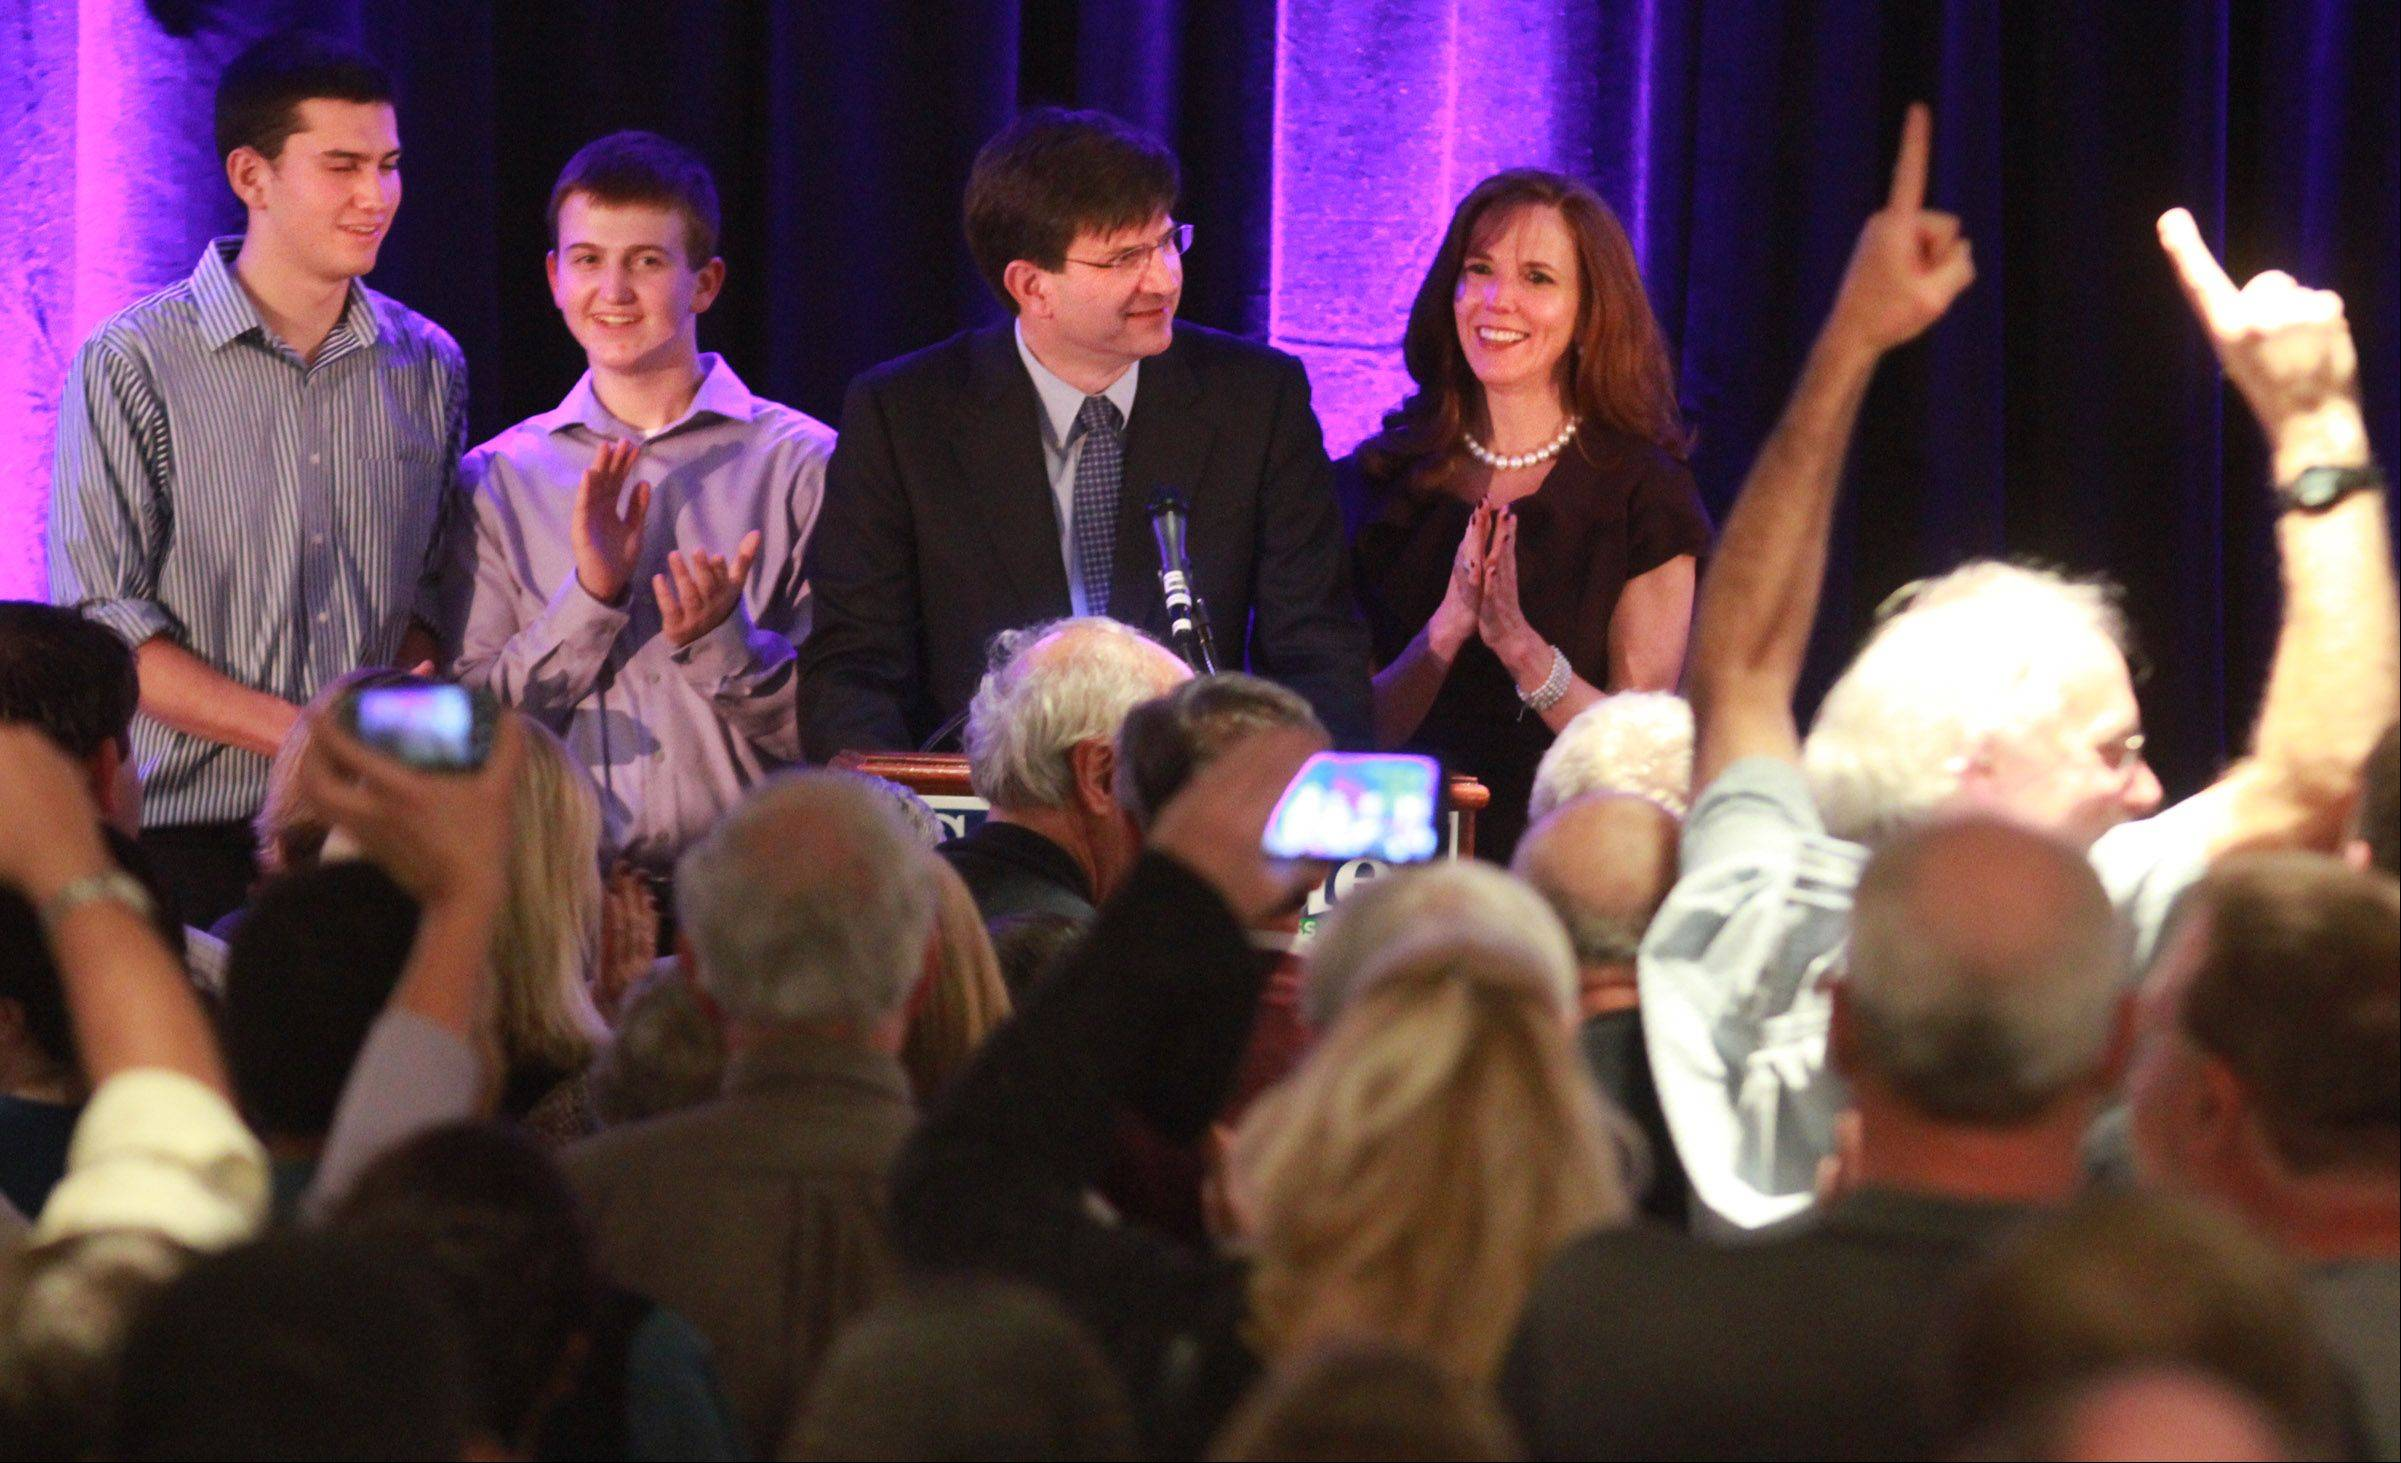 Brad Schneider, with his wife Julie Dann and his sons Adam and Daniel Schneider next to him, speaks to supporters in Northbrook after winning the Illinois' 10th Congressional District.